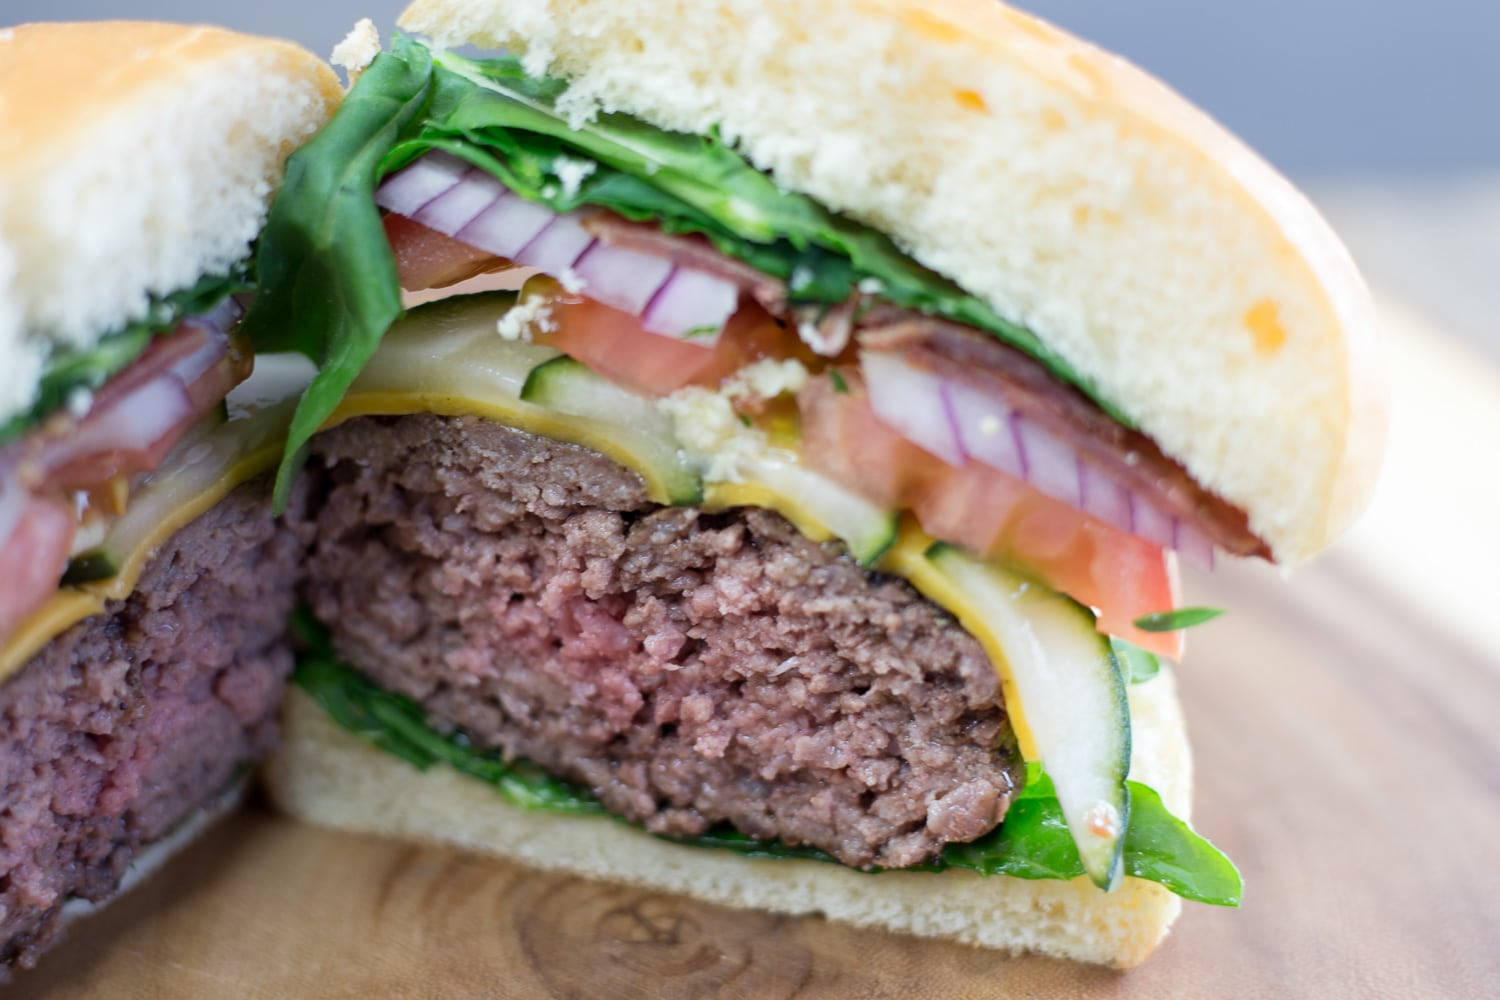 Celebrate Memorial Day with this juicy hamburger! artzyfoodie.com